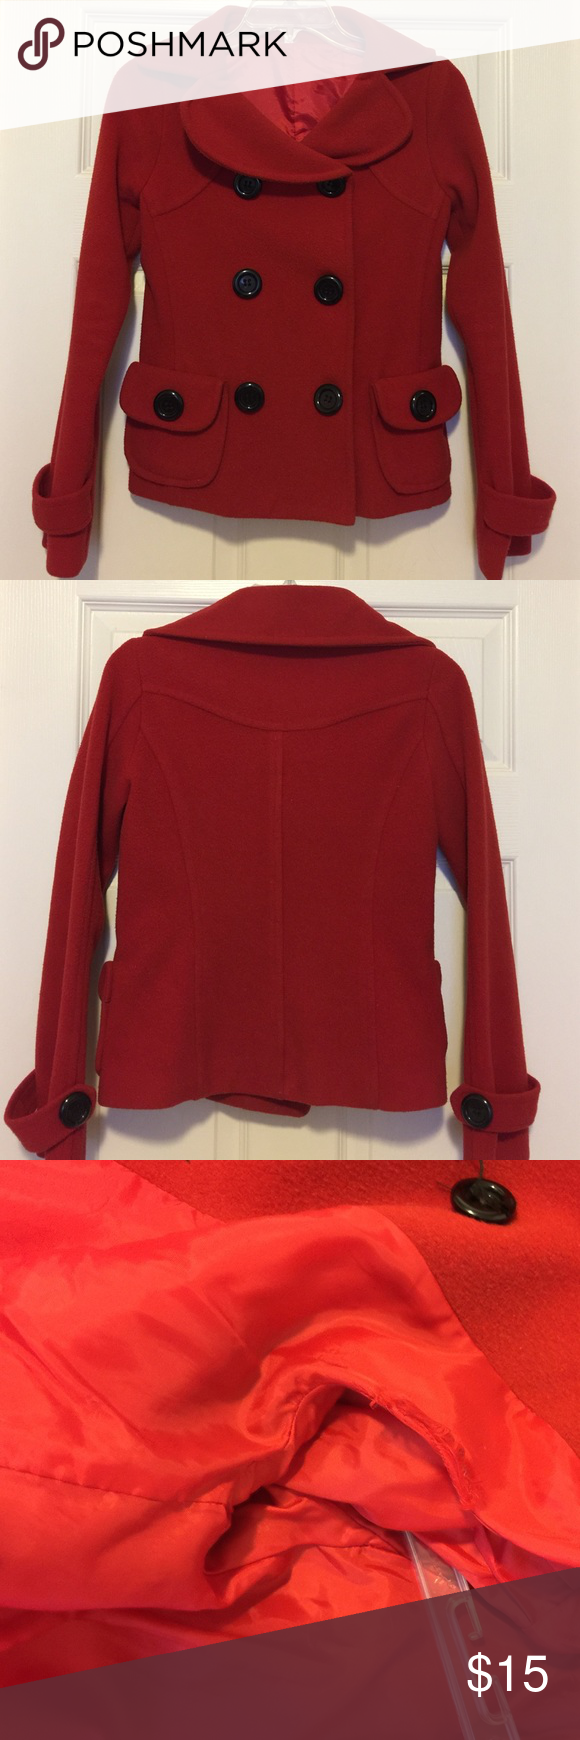 Red Fleece Coat Perfect for the cold season! Red coat with big black buttons and two front pockets. Worn but in good condition - only flaw is undone seam inside, shown in third photo. Tag is faded but size fits like XS. Jackets & Coats Pea Coats